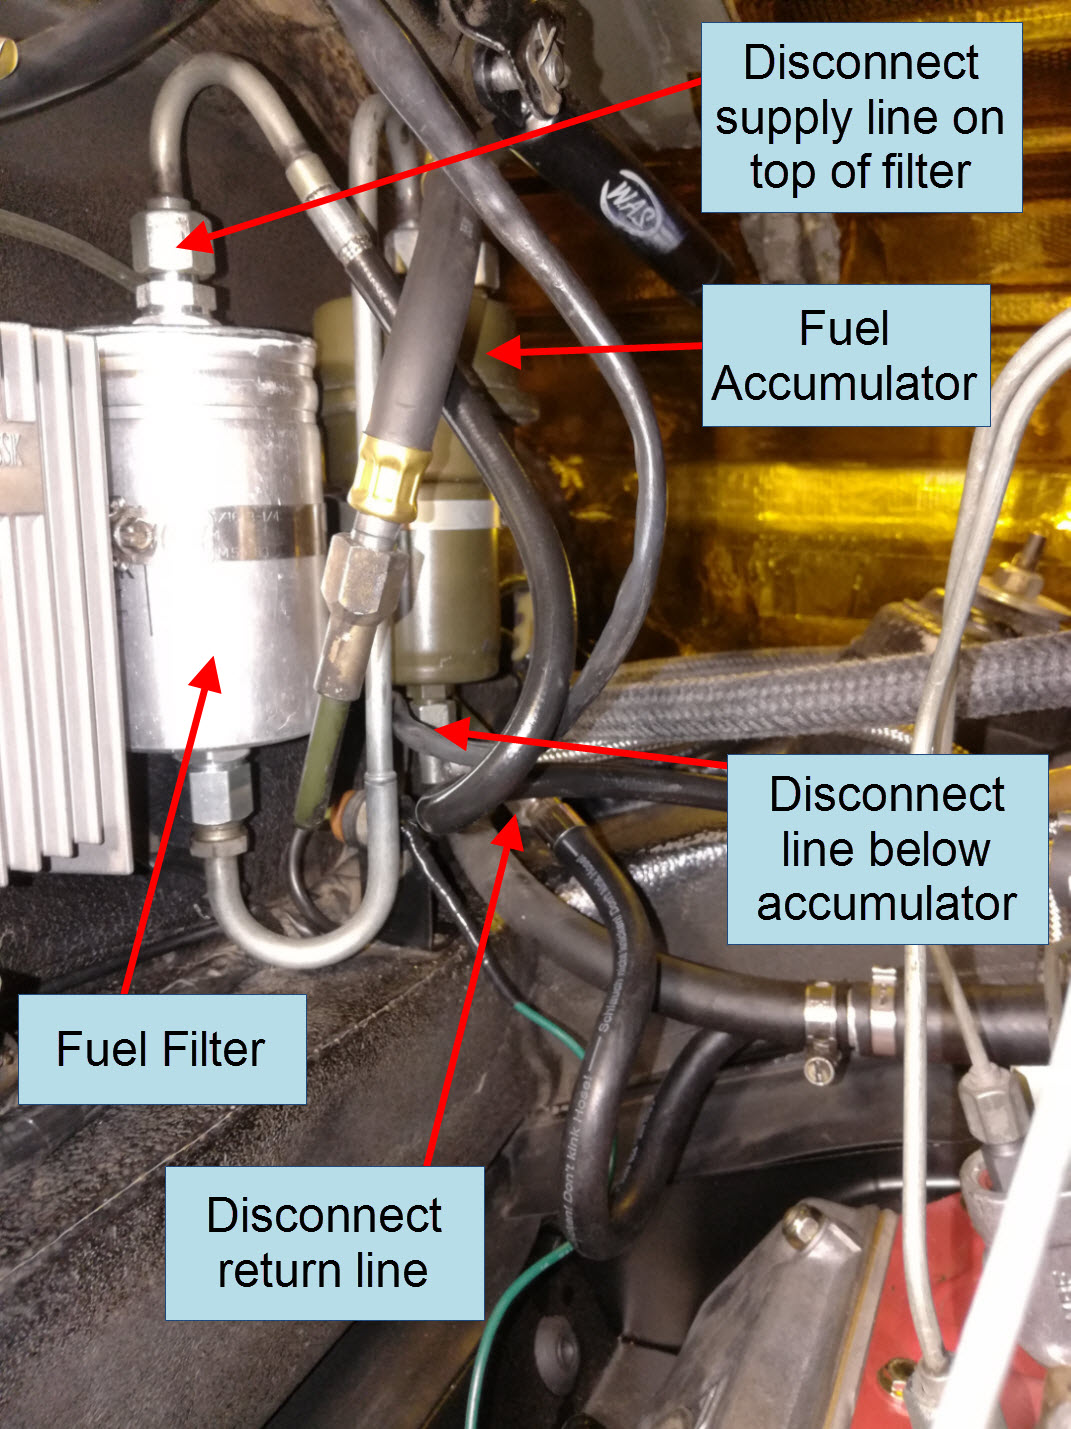 Air-cooled Porsche 911 CIS fuel line connections.